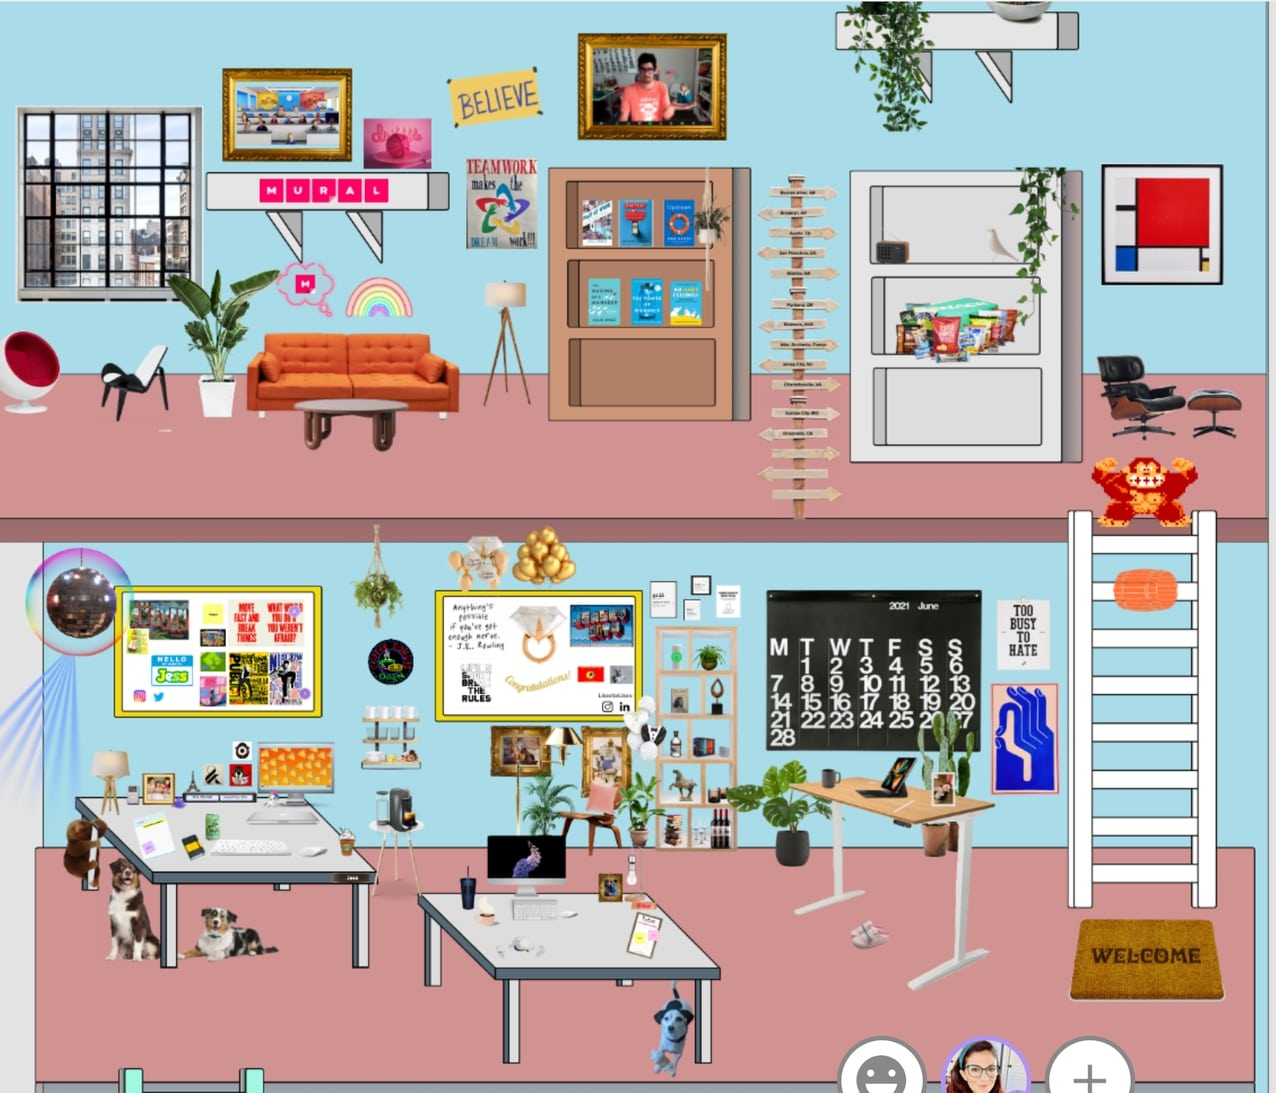 An image of the MURAL design team's virtual office.